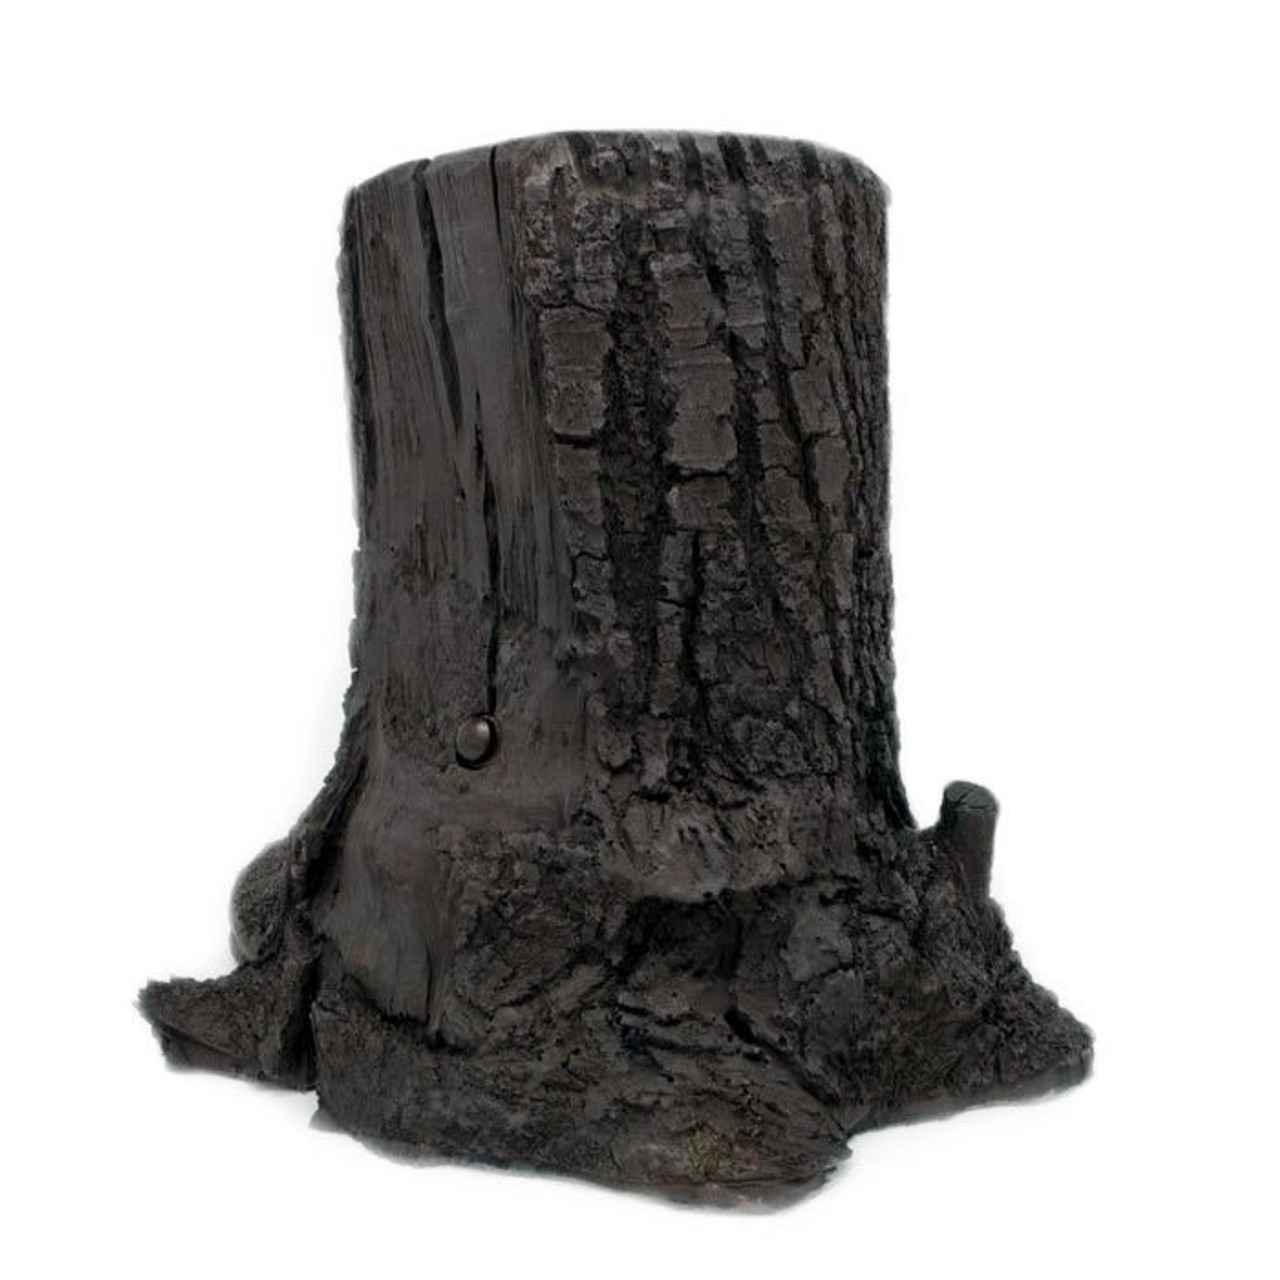 Marvelous Tree Stump 4K Hidden Camera W Dvr 90 Day Standby Battery Camellatalisay Diy Chair Ideas Camellatalisaycom